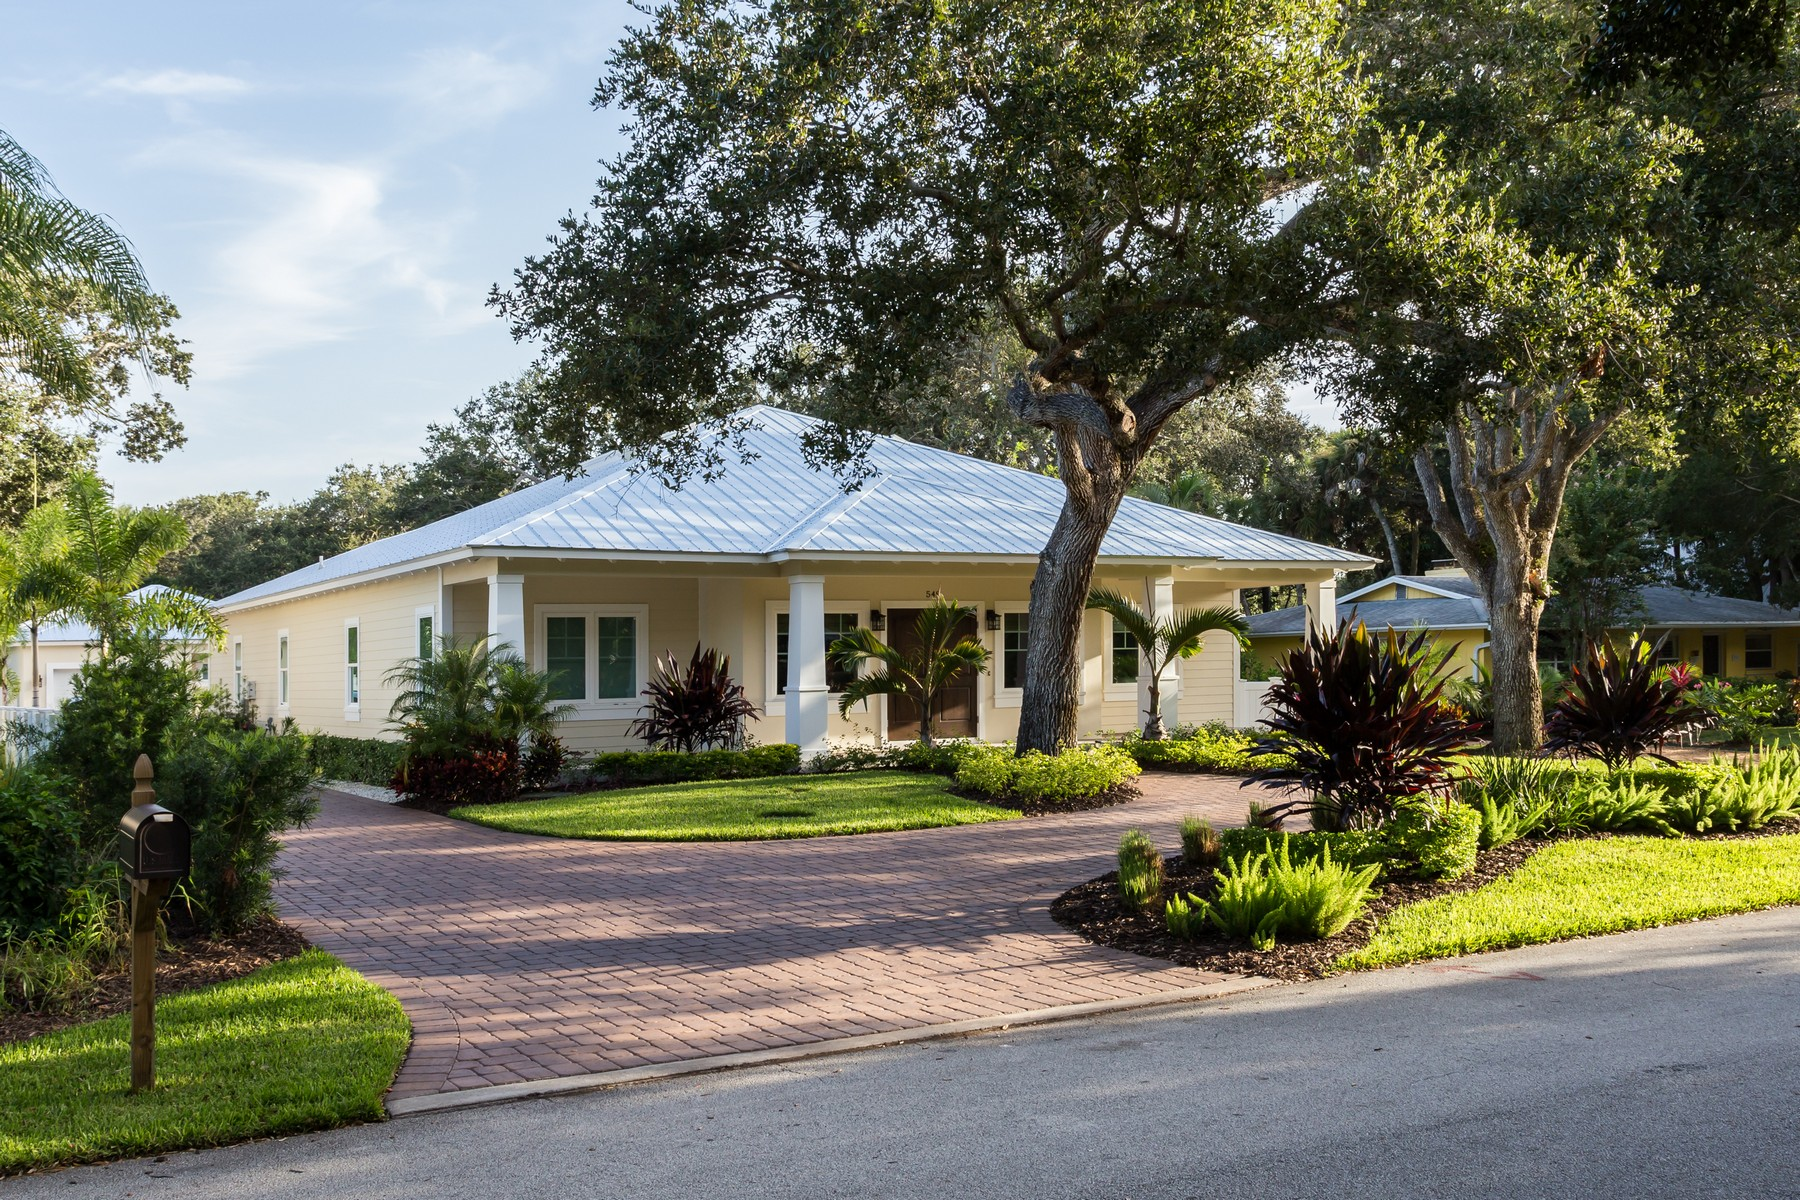 Single Family Home for Sale at Gorgeous Key West Style Bungalow in Central Beach 548 Conn Way Vero Beach, Florida 32963 United States